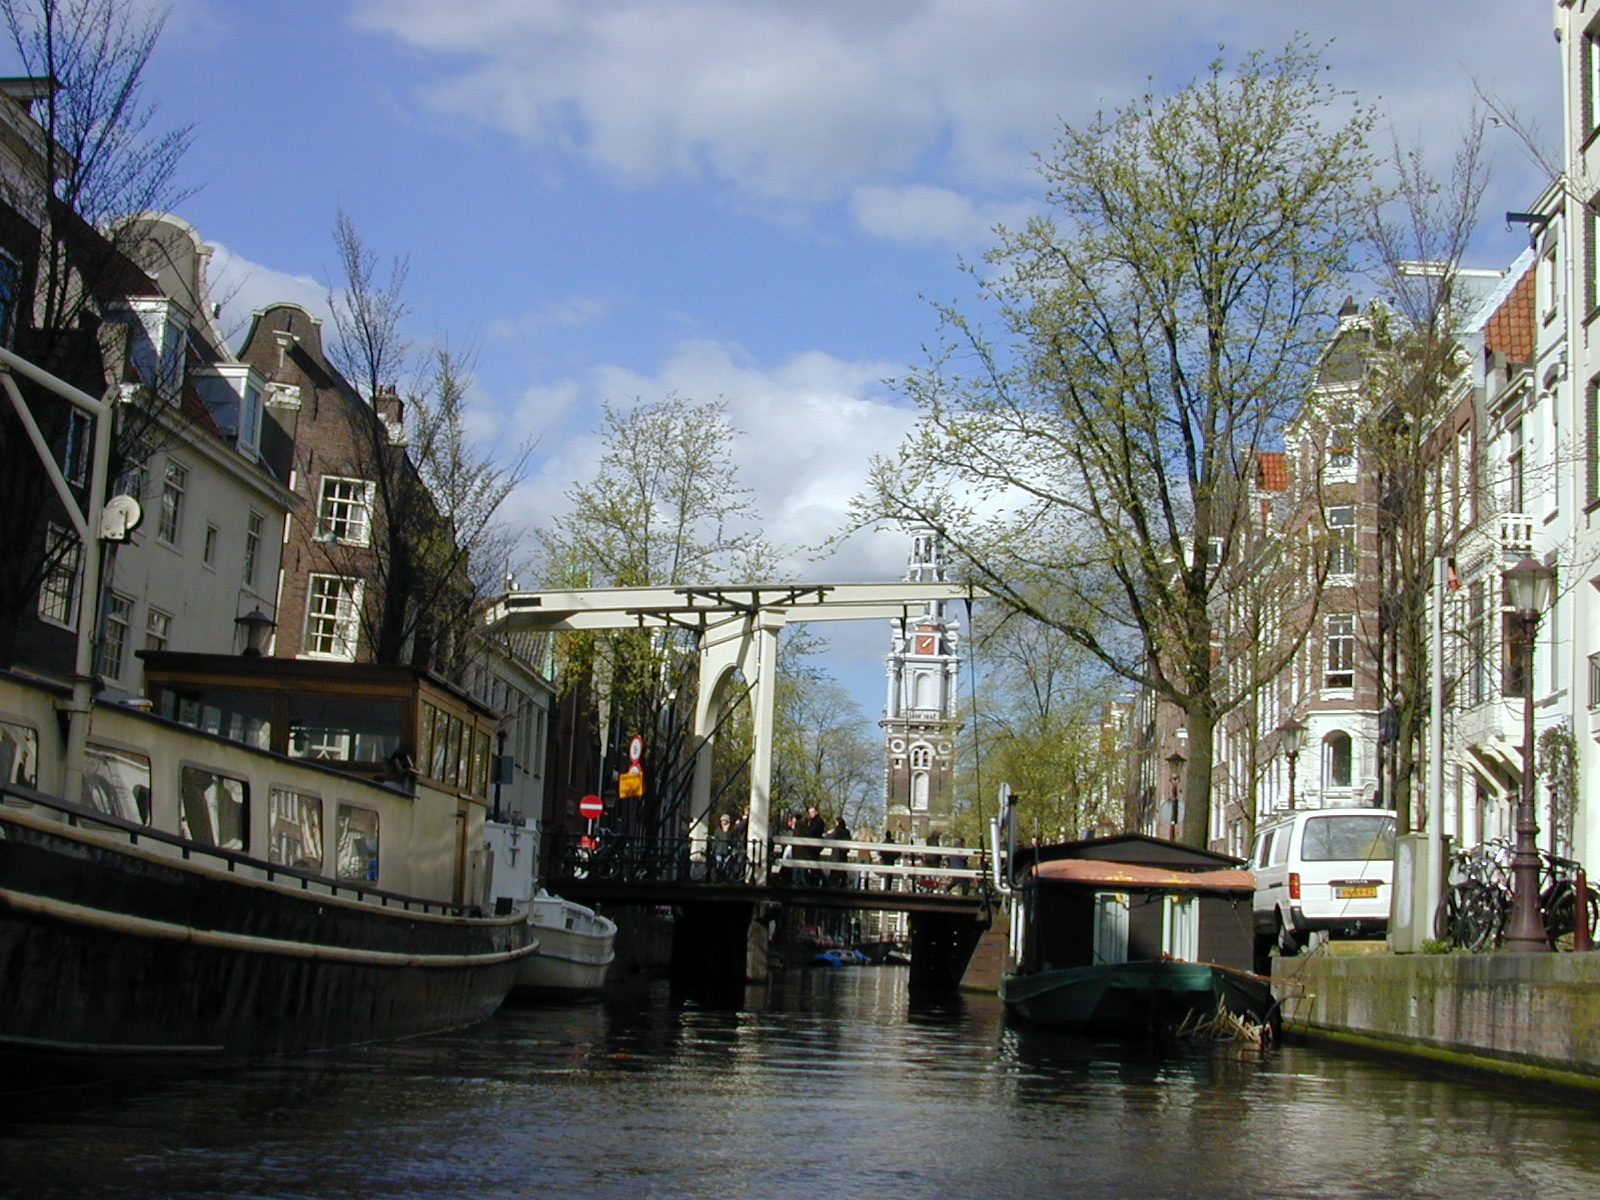 canal canals amsterdam houseboat houseboats floating docked bridge old